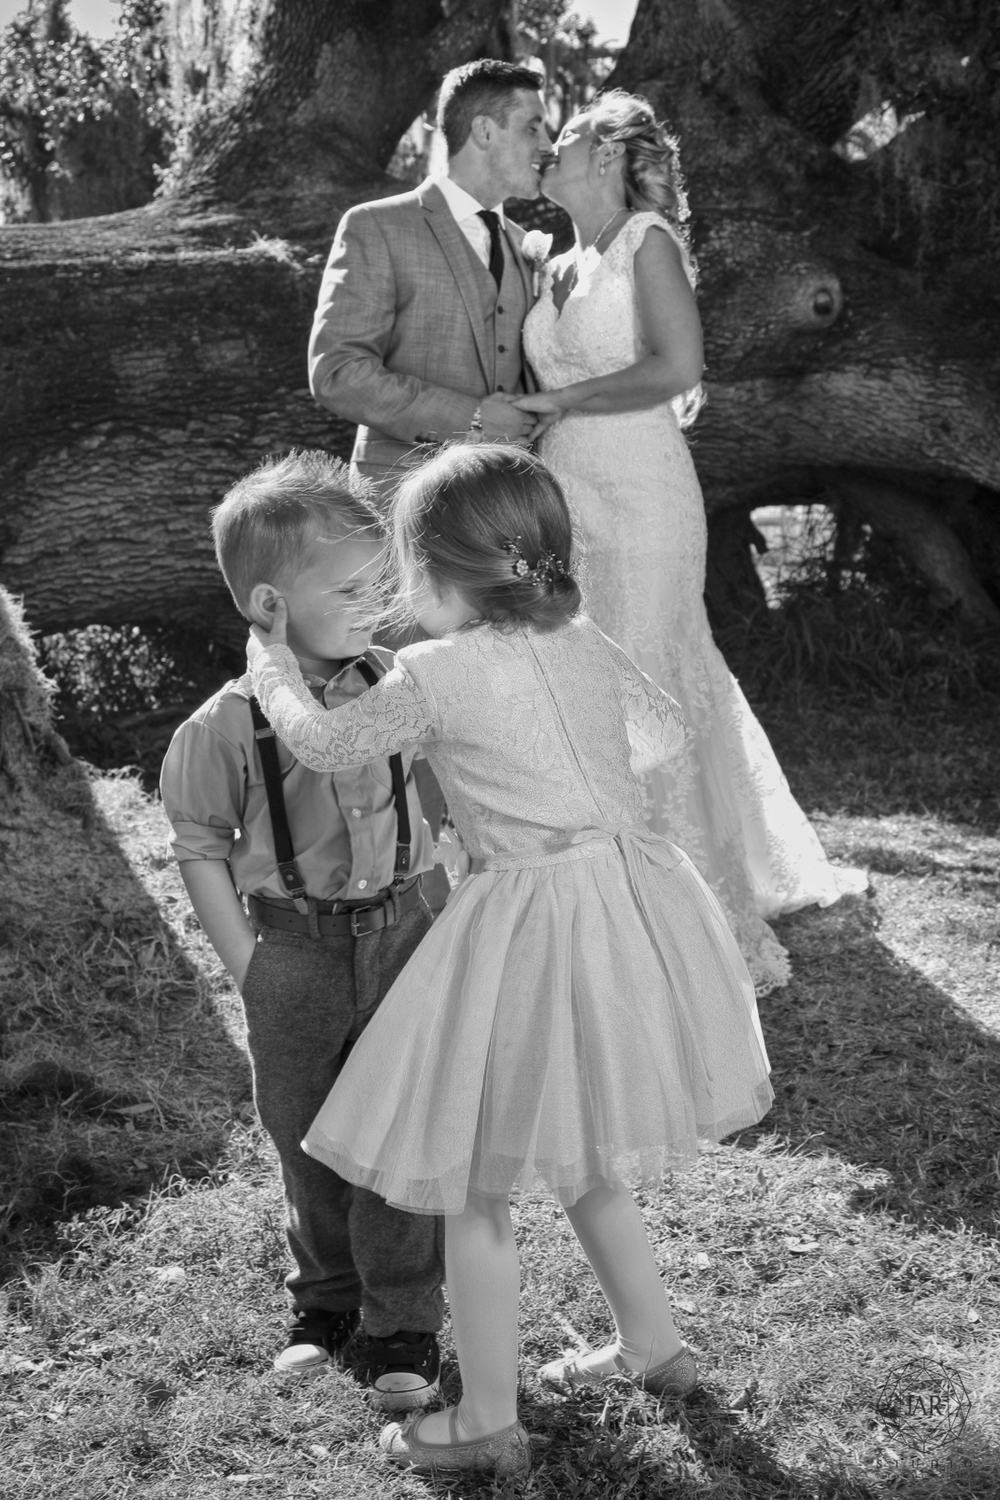 17-kids-kissing-flower-girl-dress-fun-wedding-jarstudio.JPG